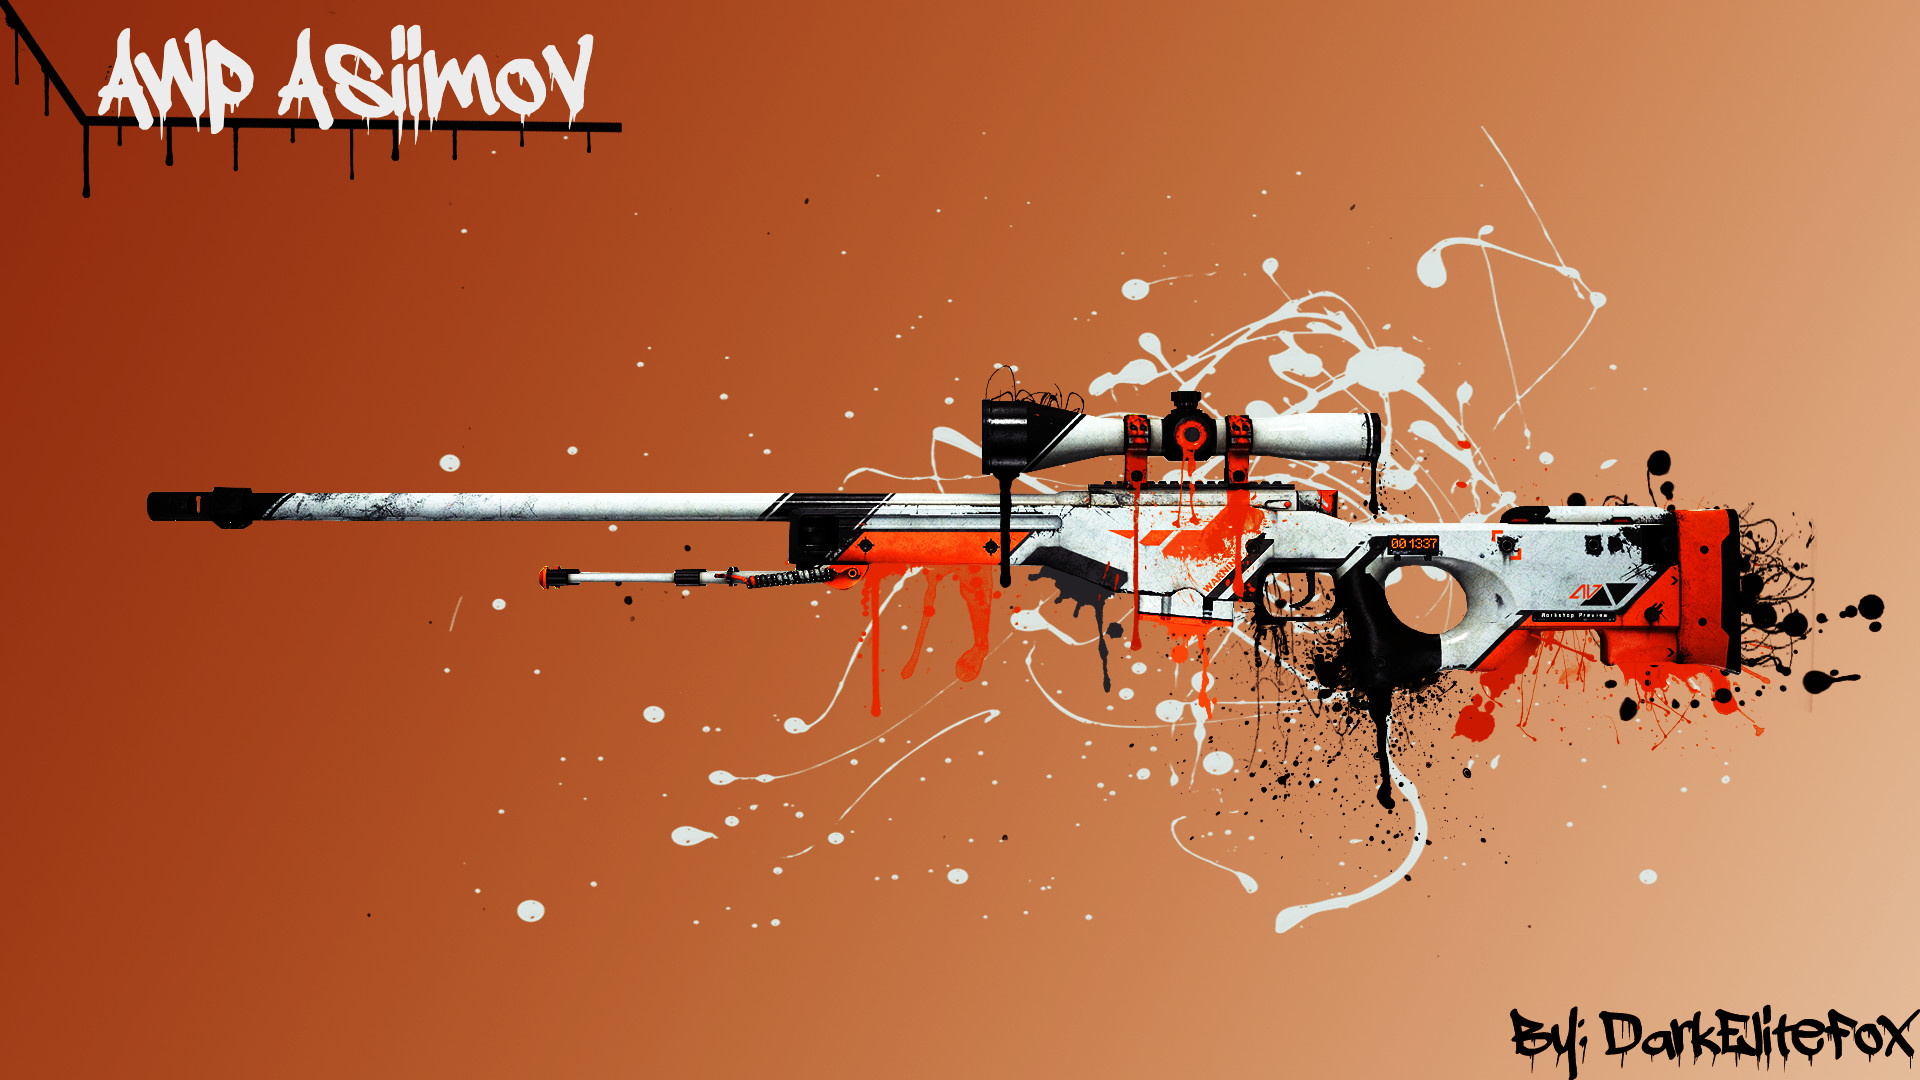 1920x1080 AWP Asiimov Wallpaper picture - ID: 2158